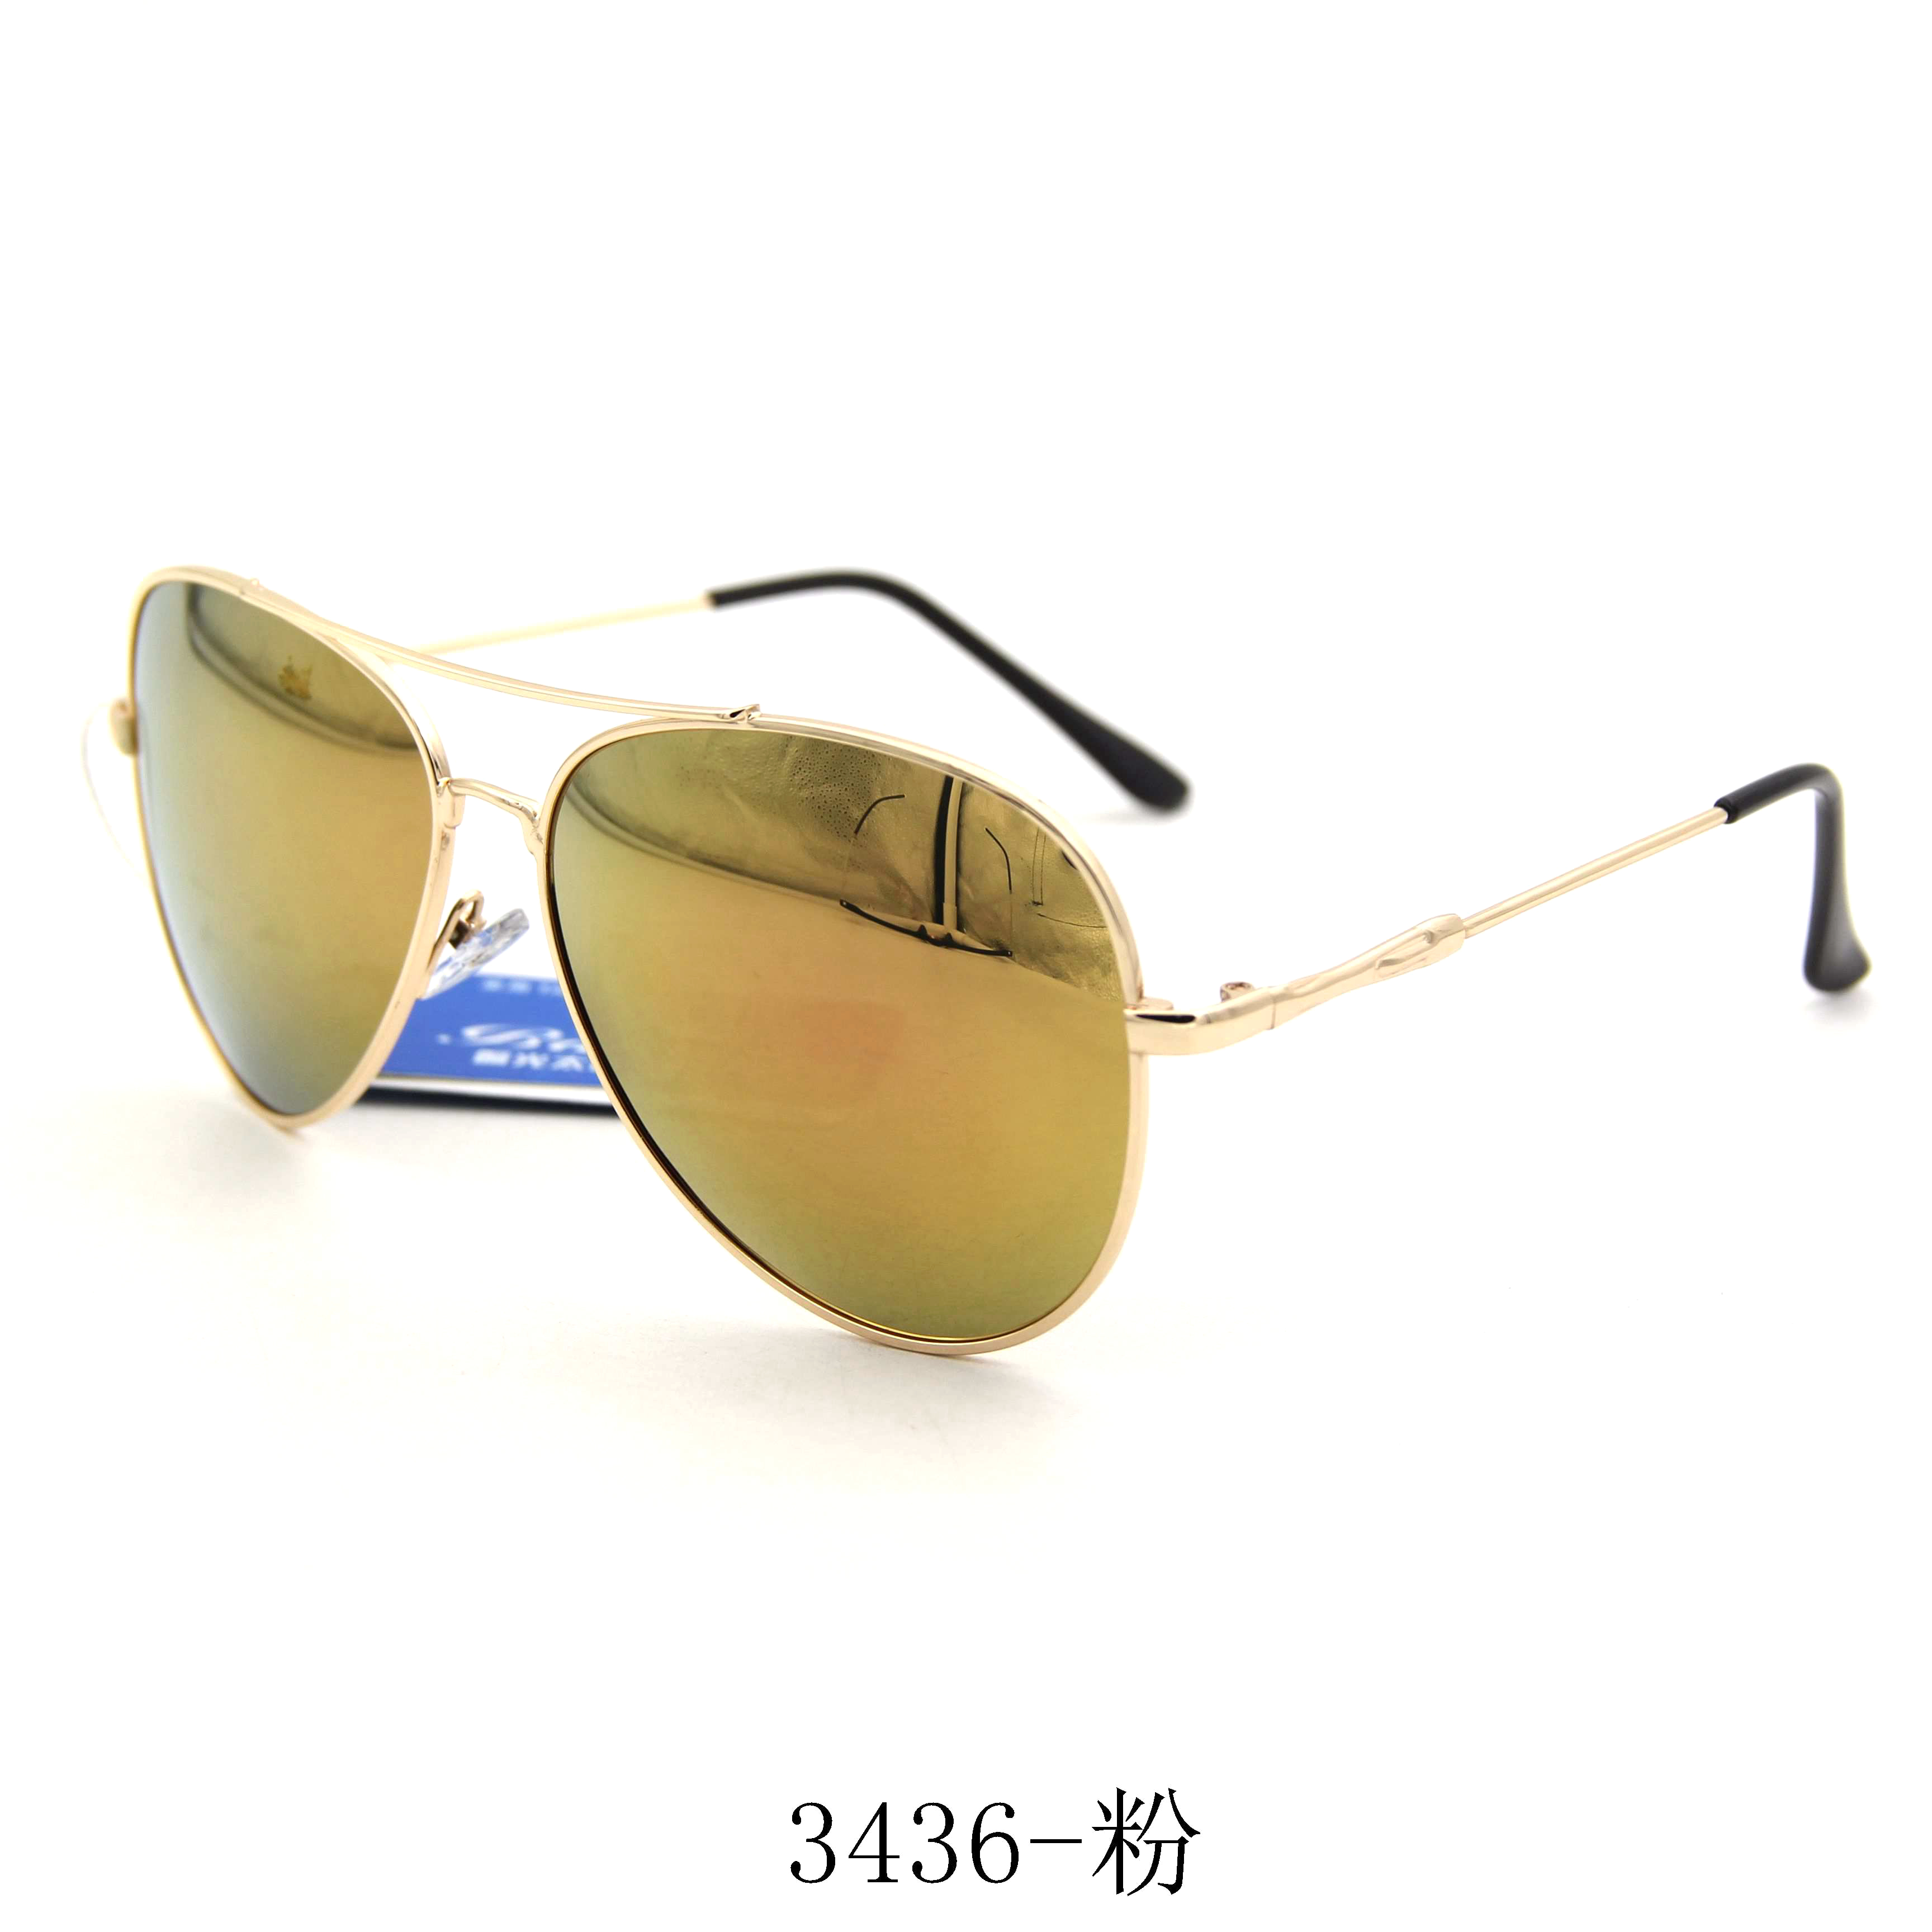 Patent plastic floatable sunglasses